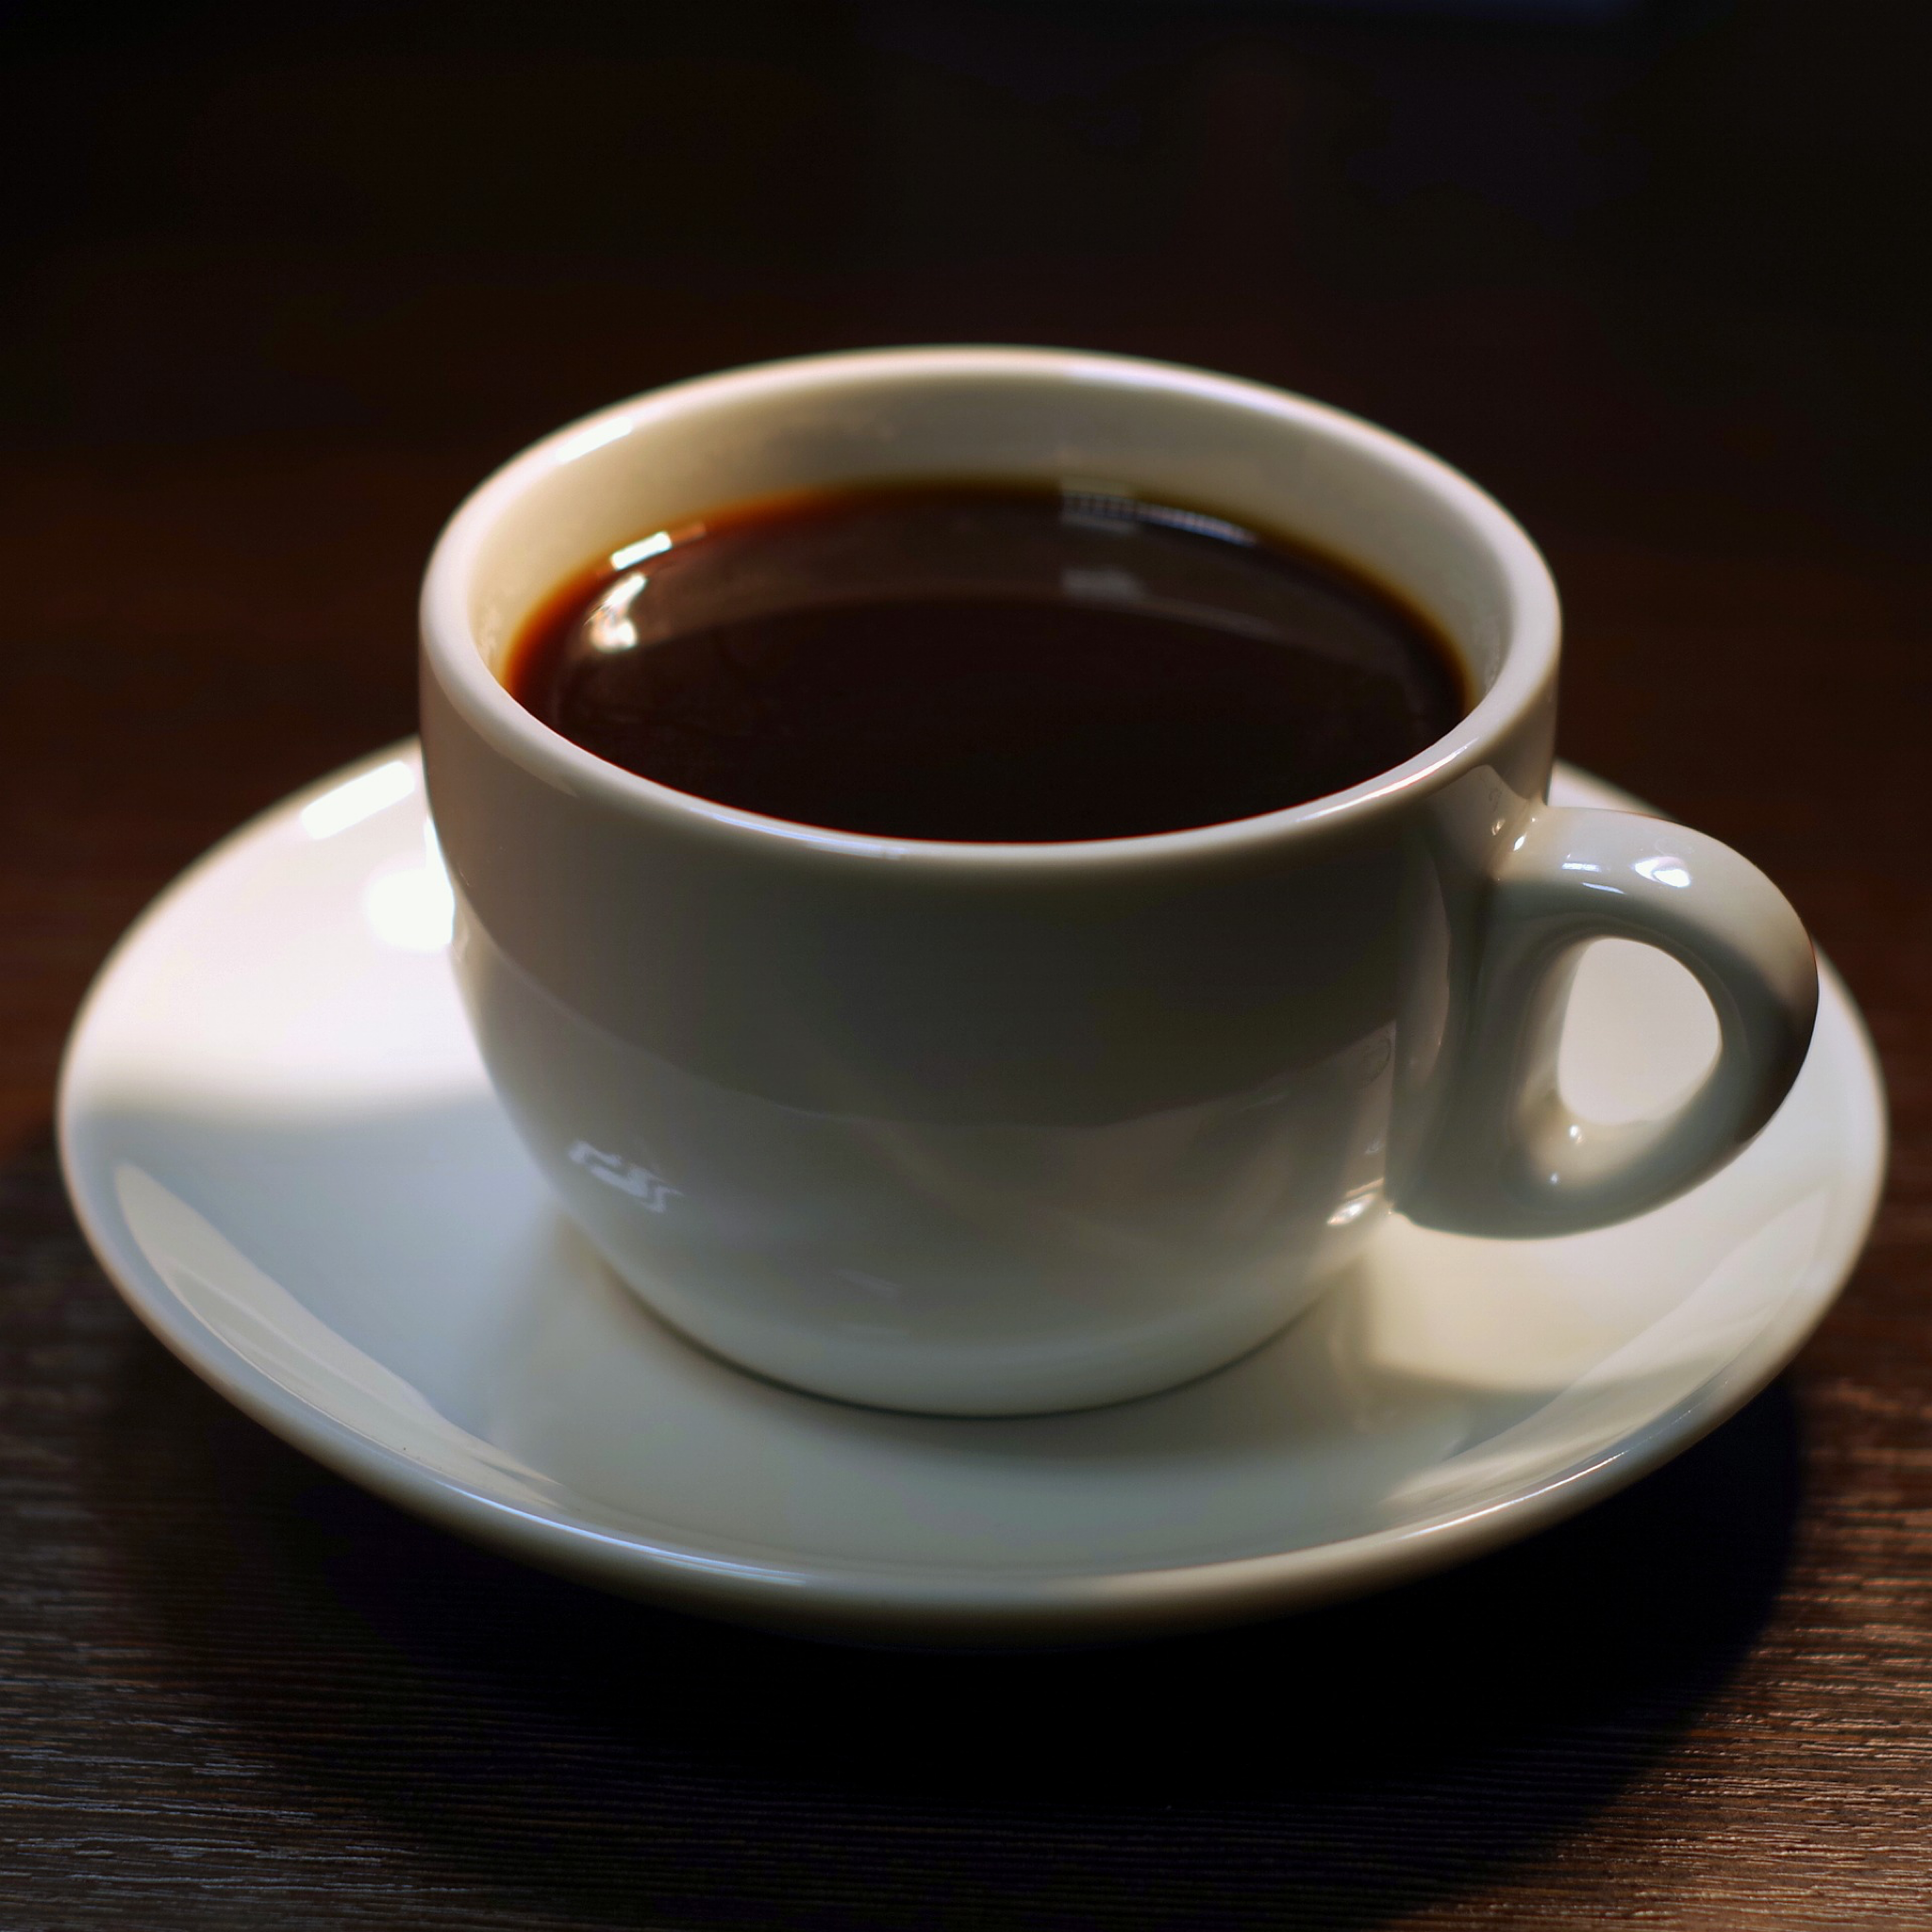 What Are You Really Brewing in Your Coffee Maker?